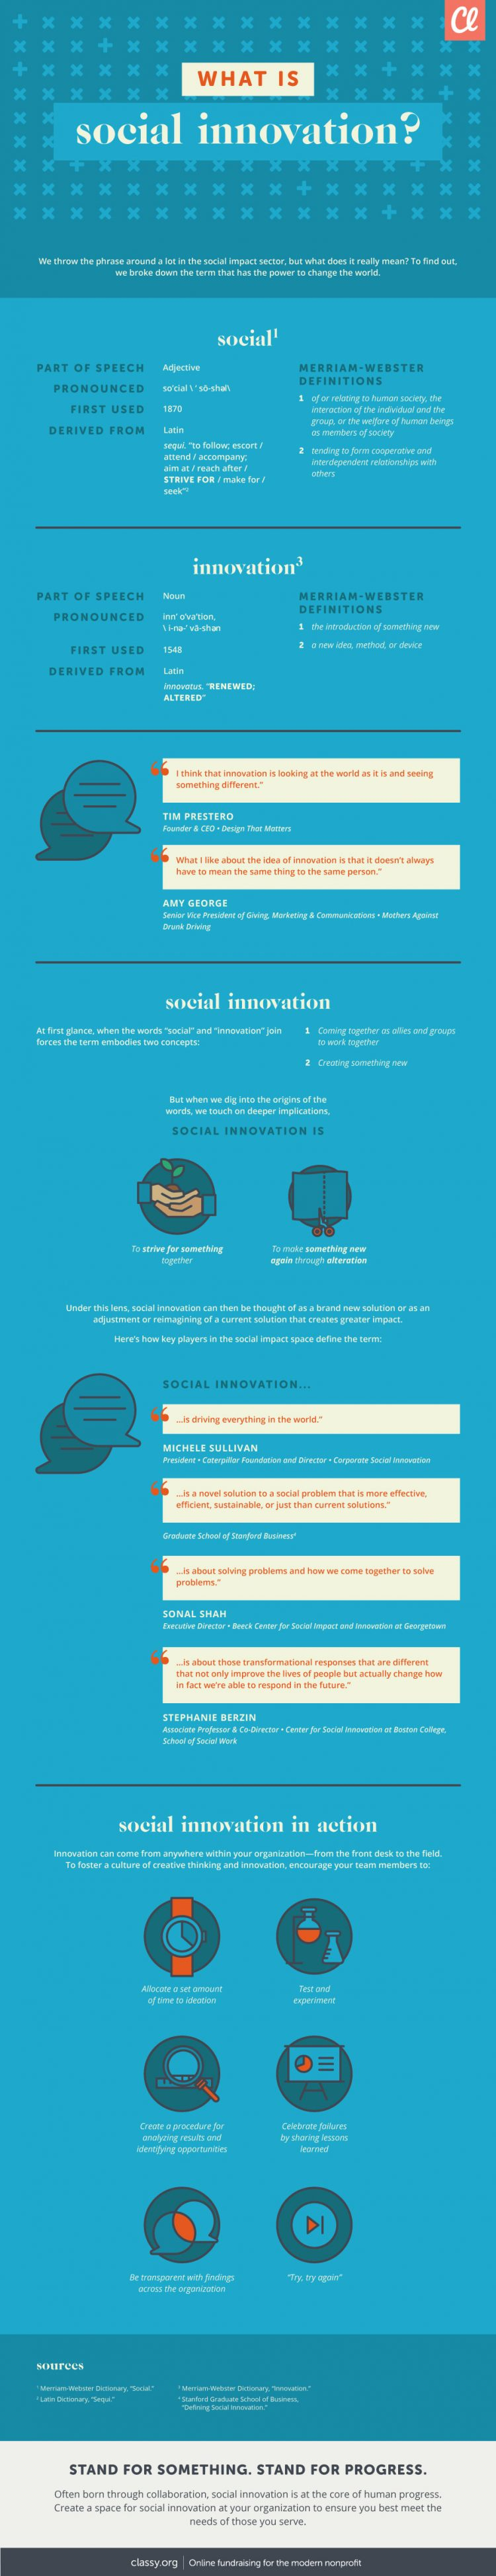 Social Innovation Definition Infographic